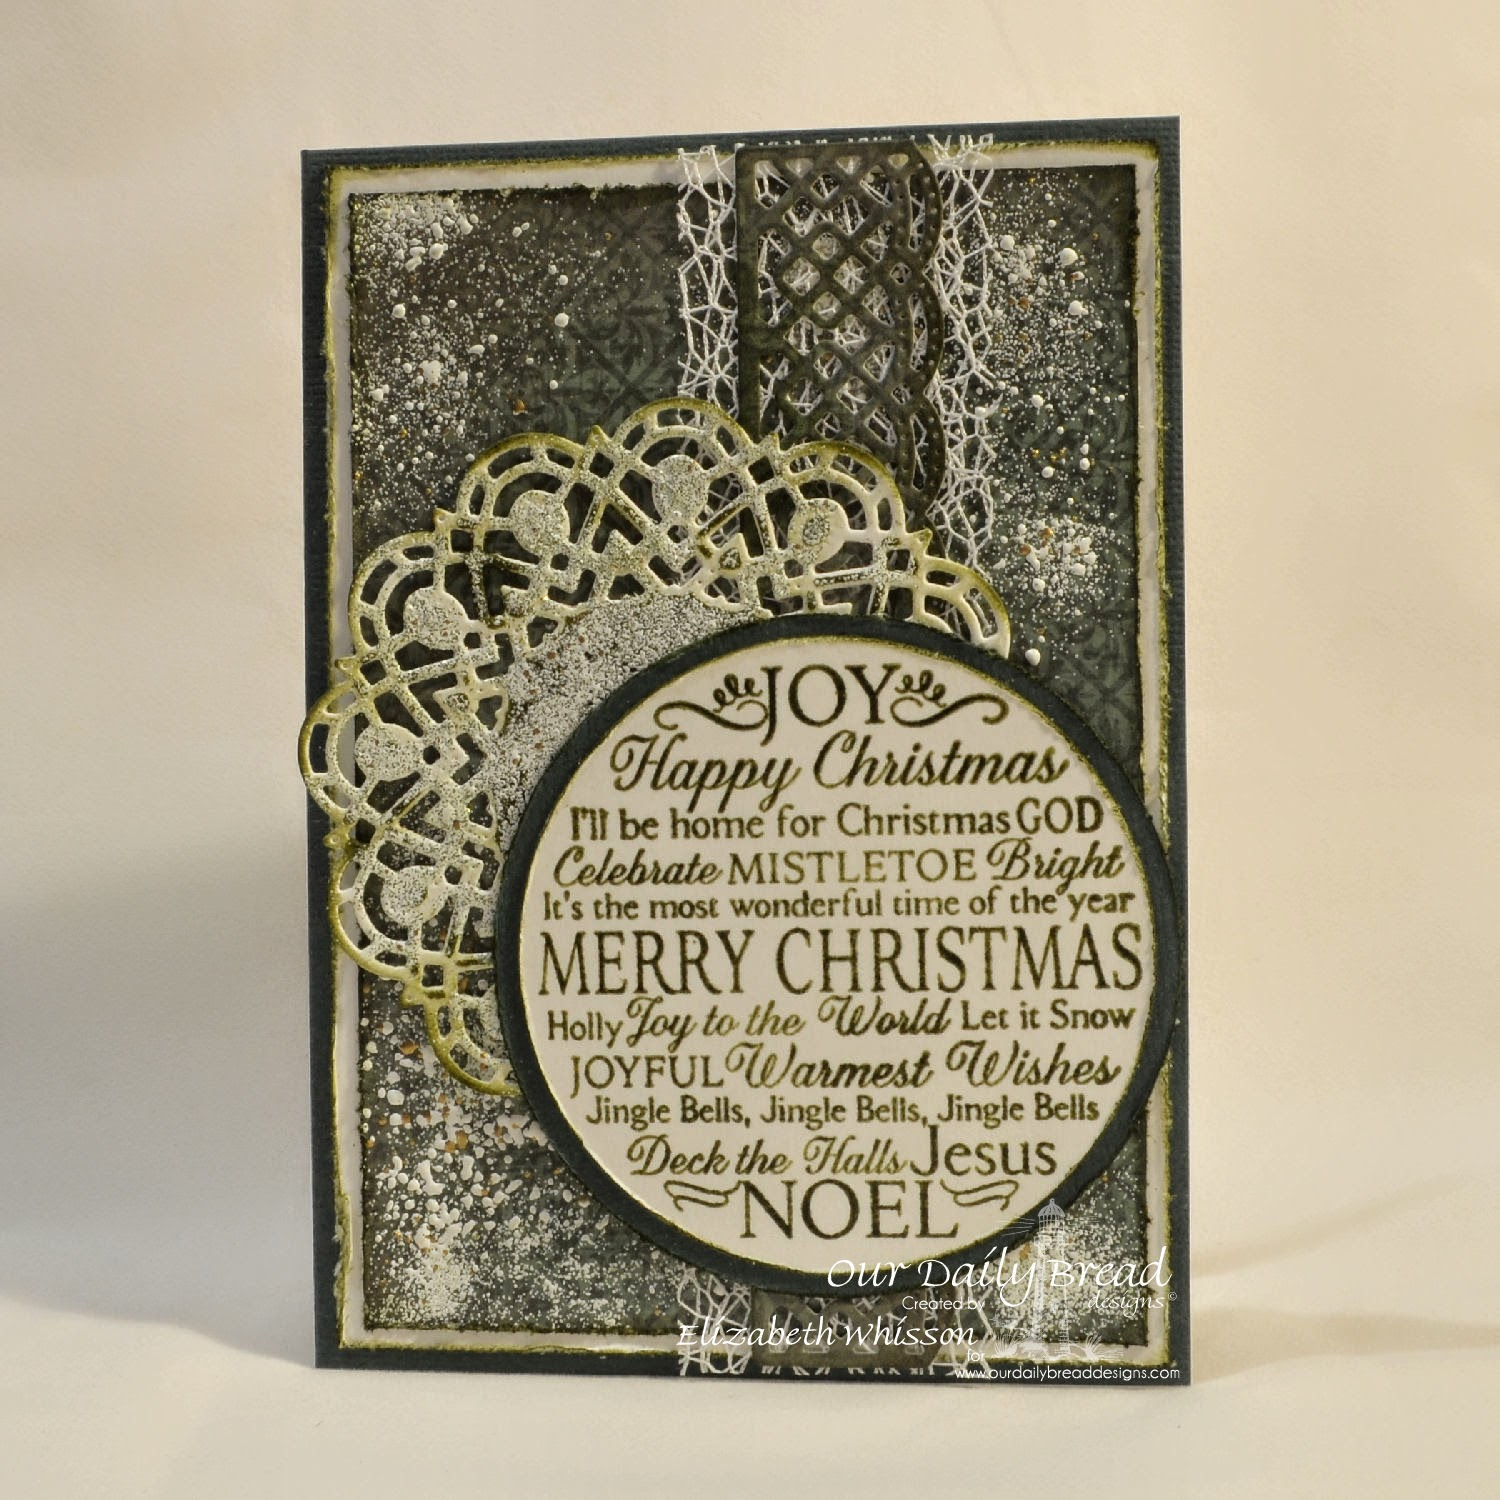 Our Daily Bread Designs, Noel Ornament, Doily Dies, Matting Circles Dies, Circle Ornament Dies, Beautiful Borders Dies, ODBD Christmas Paper Collection 2013, Designed by Elizabeth Whisson